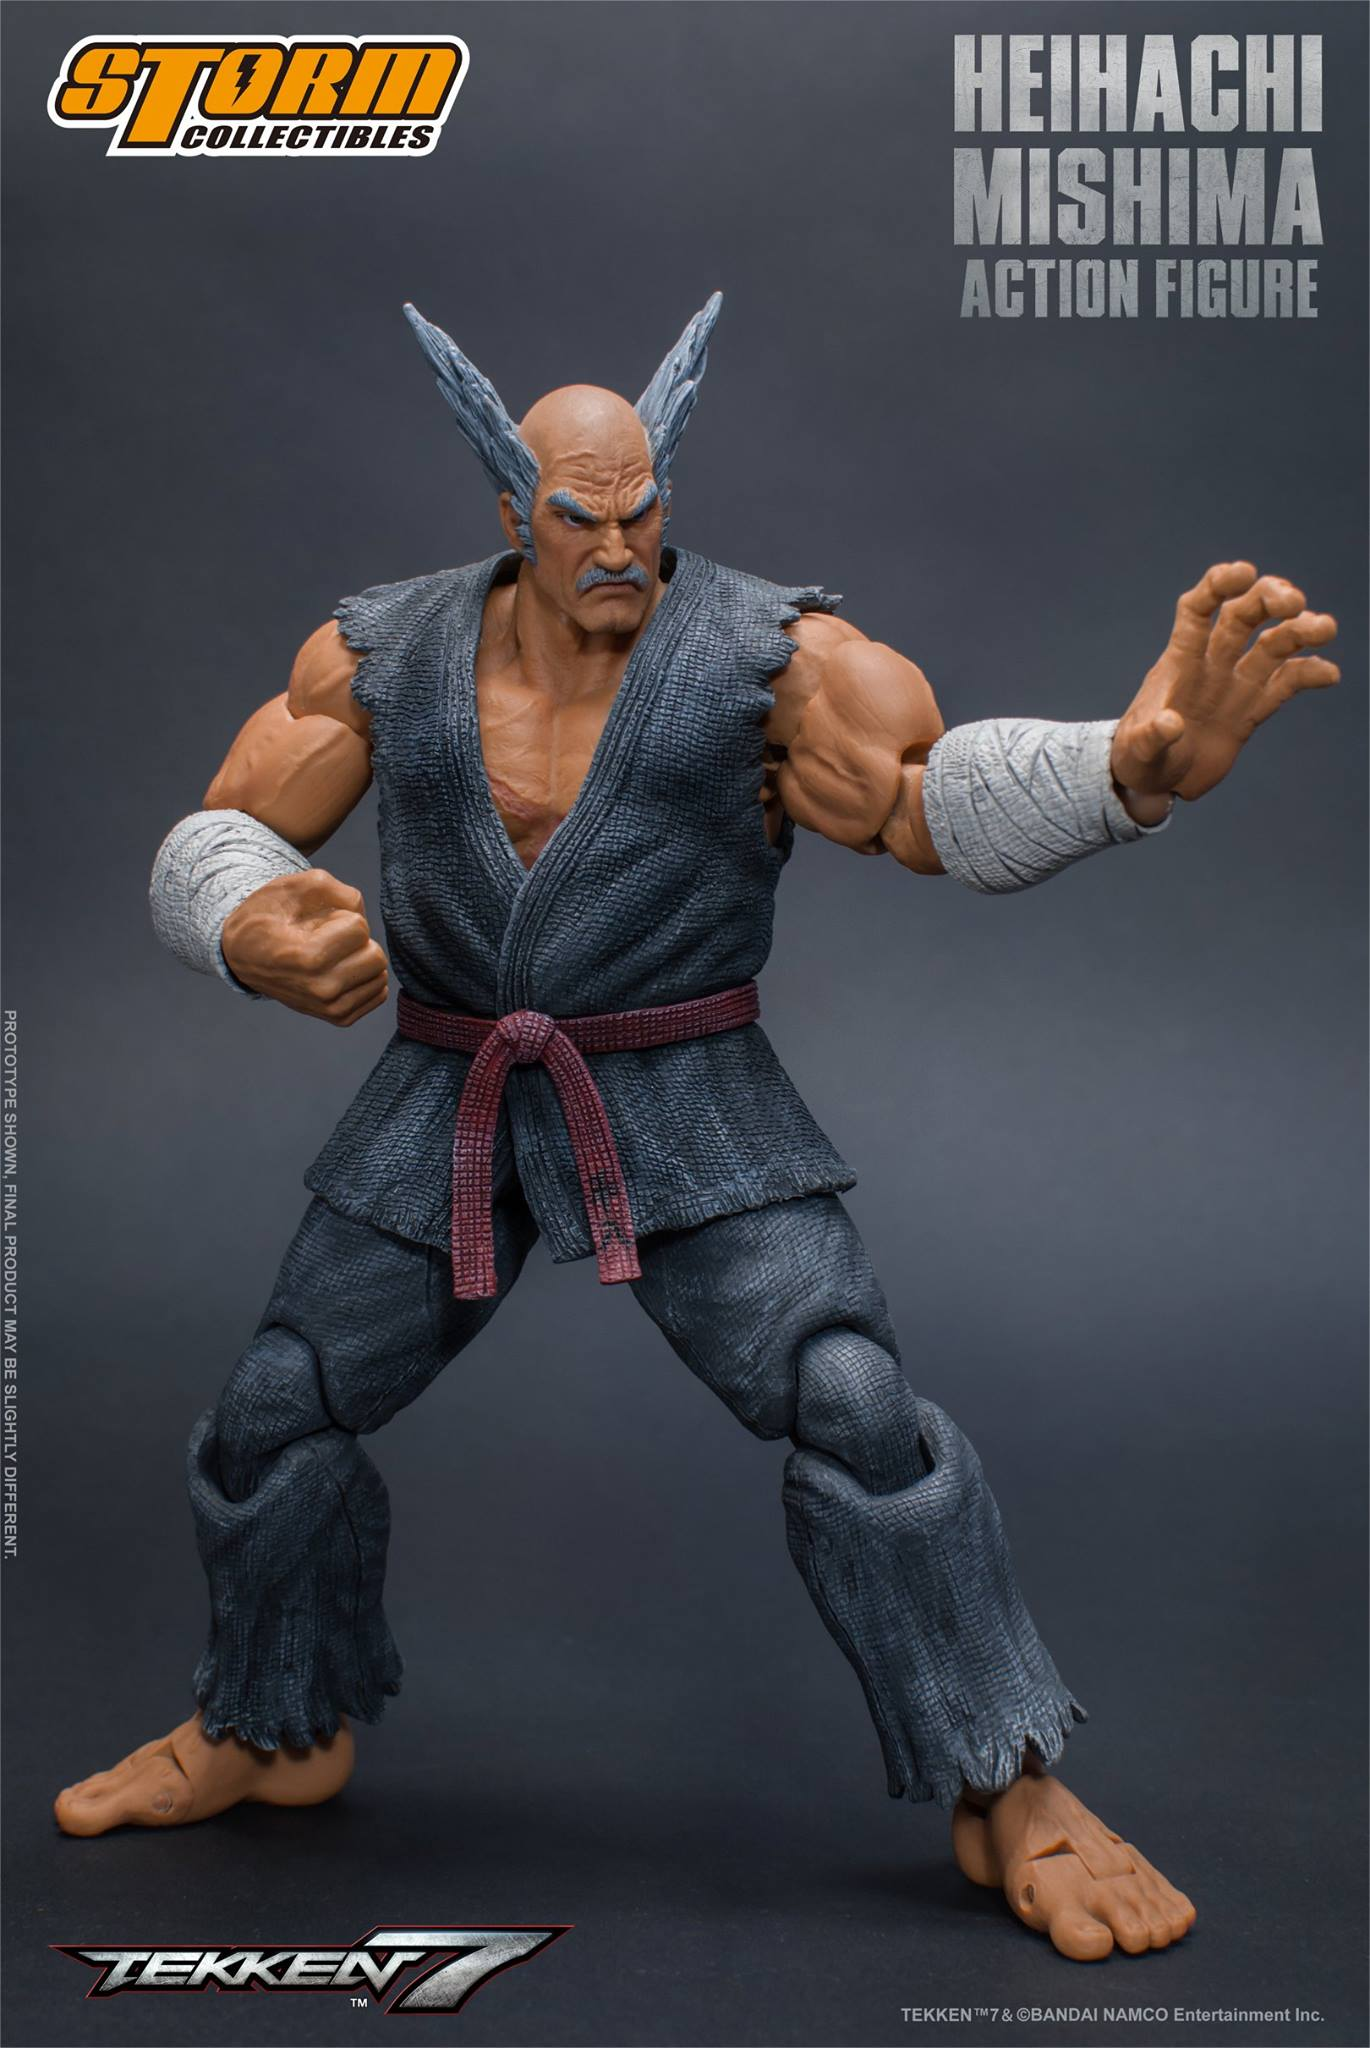 tekken 7 heihachi mishima - photo #20